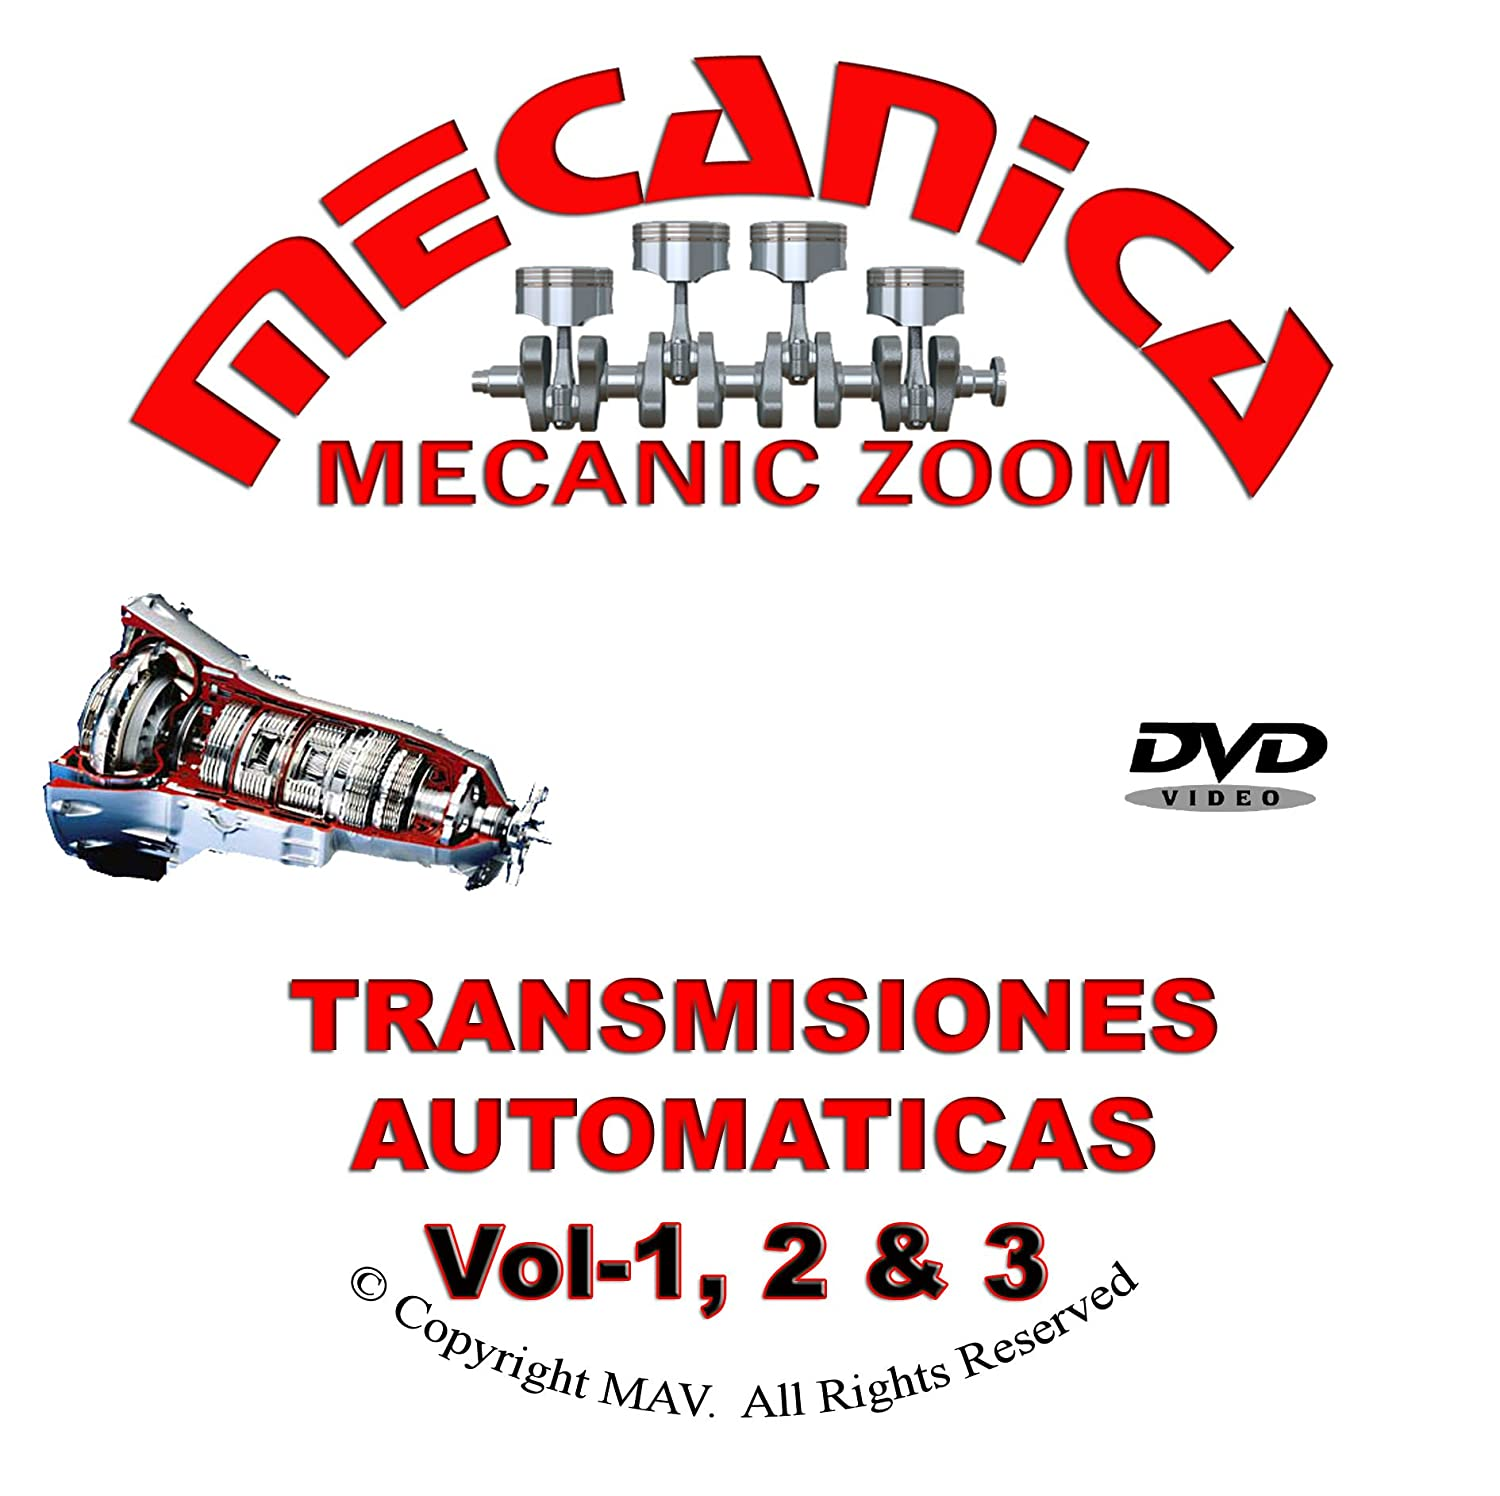 Amazon.com: MECANICA Zoom Mecanic 20 VOLUMES DVD Set [DVD] [2001]: Movies & TV